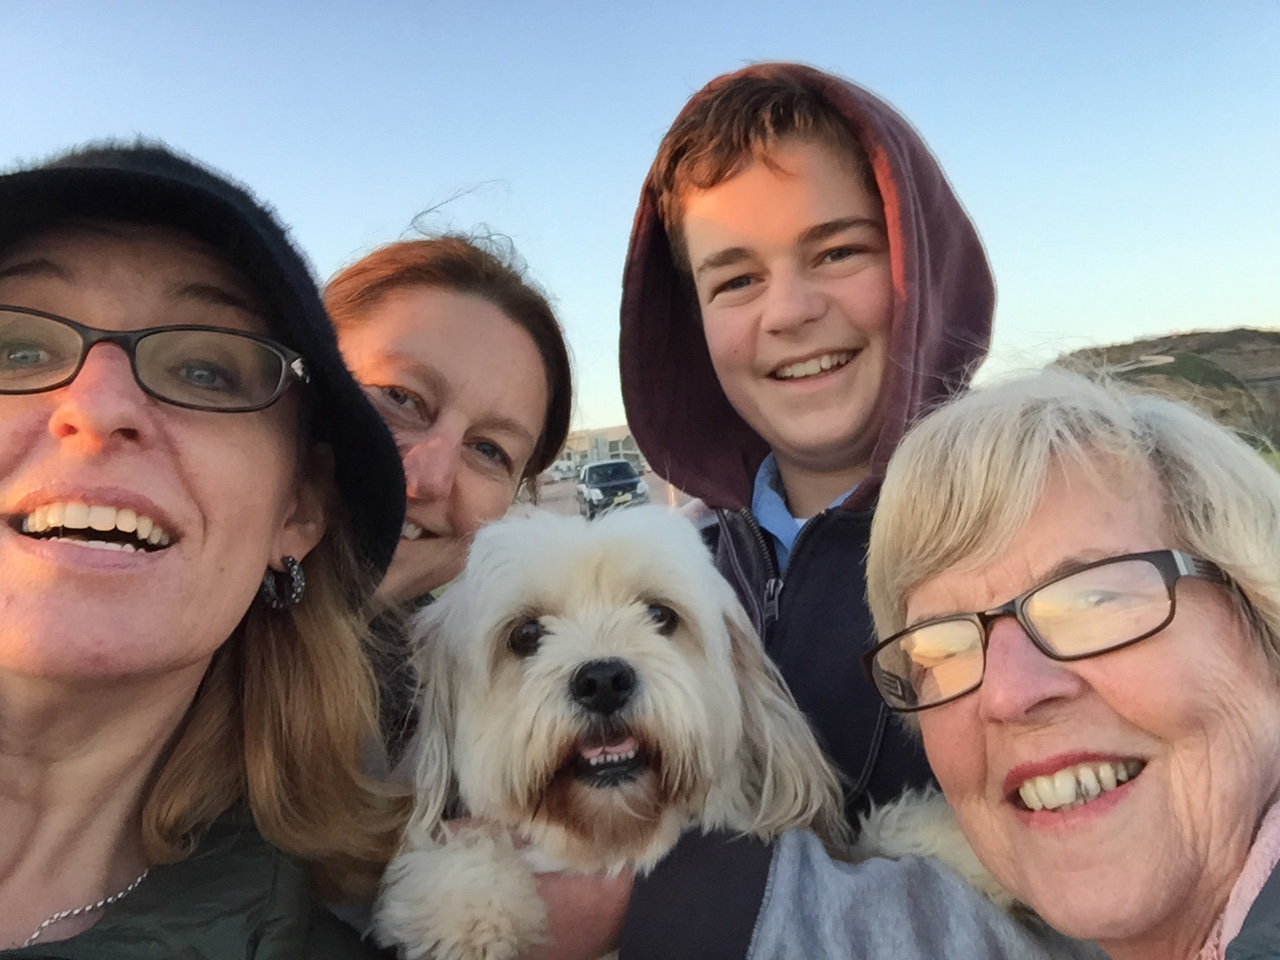 Back in Newcastle on the Anzac Bridge with Aunty Jacq, Callan and Charlie the grinning mutt.